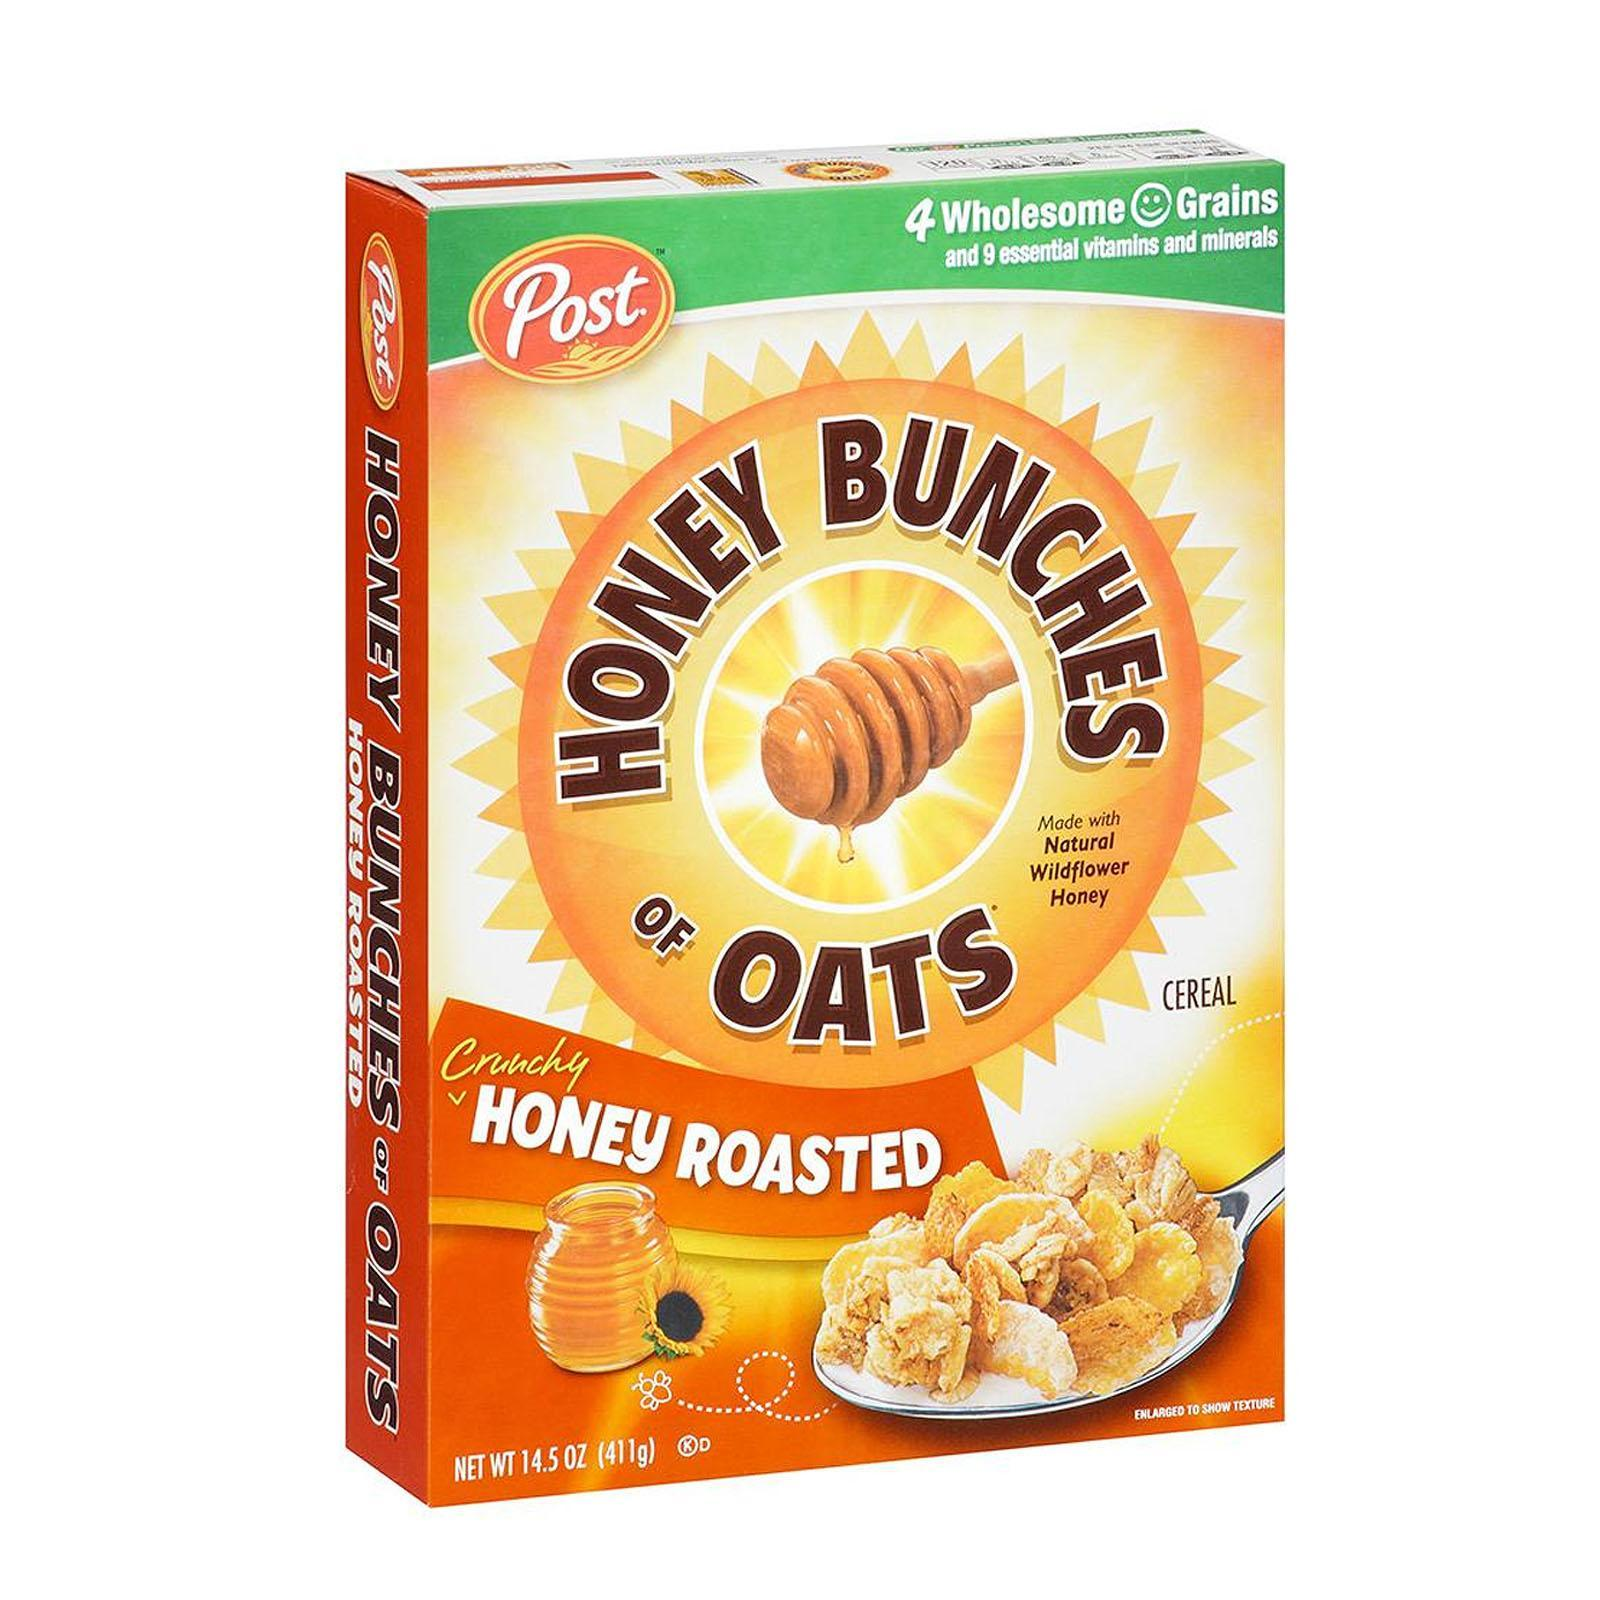 Post Honey Bunches of Oats Honey Roasted Whole Grain Cereal